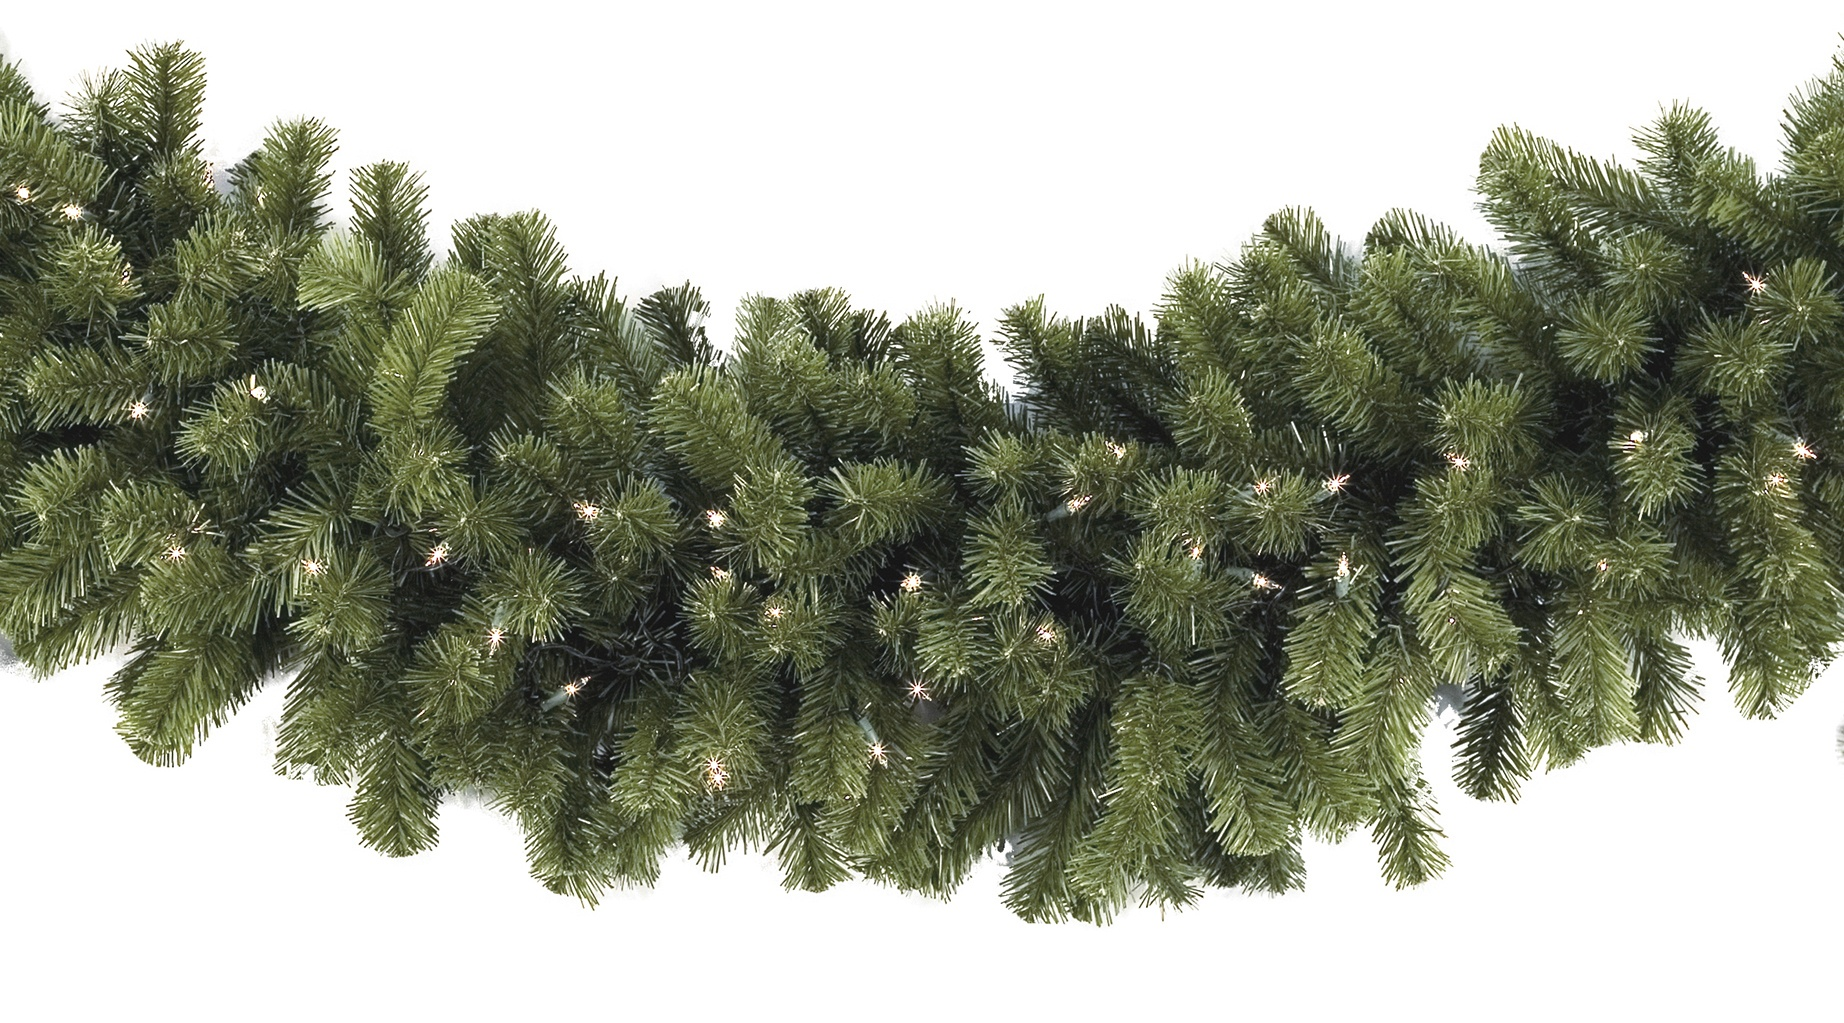 Artificial Christmas Garland - Sequoia Fir Commercial Unlit Christmas Garland